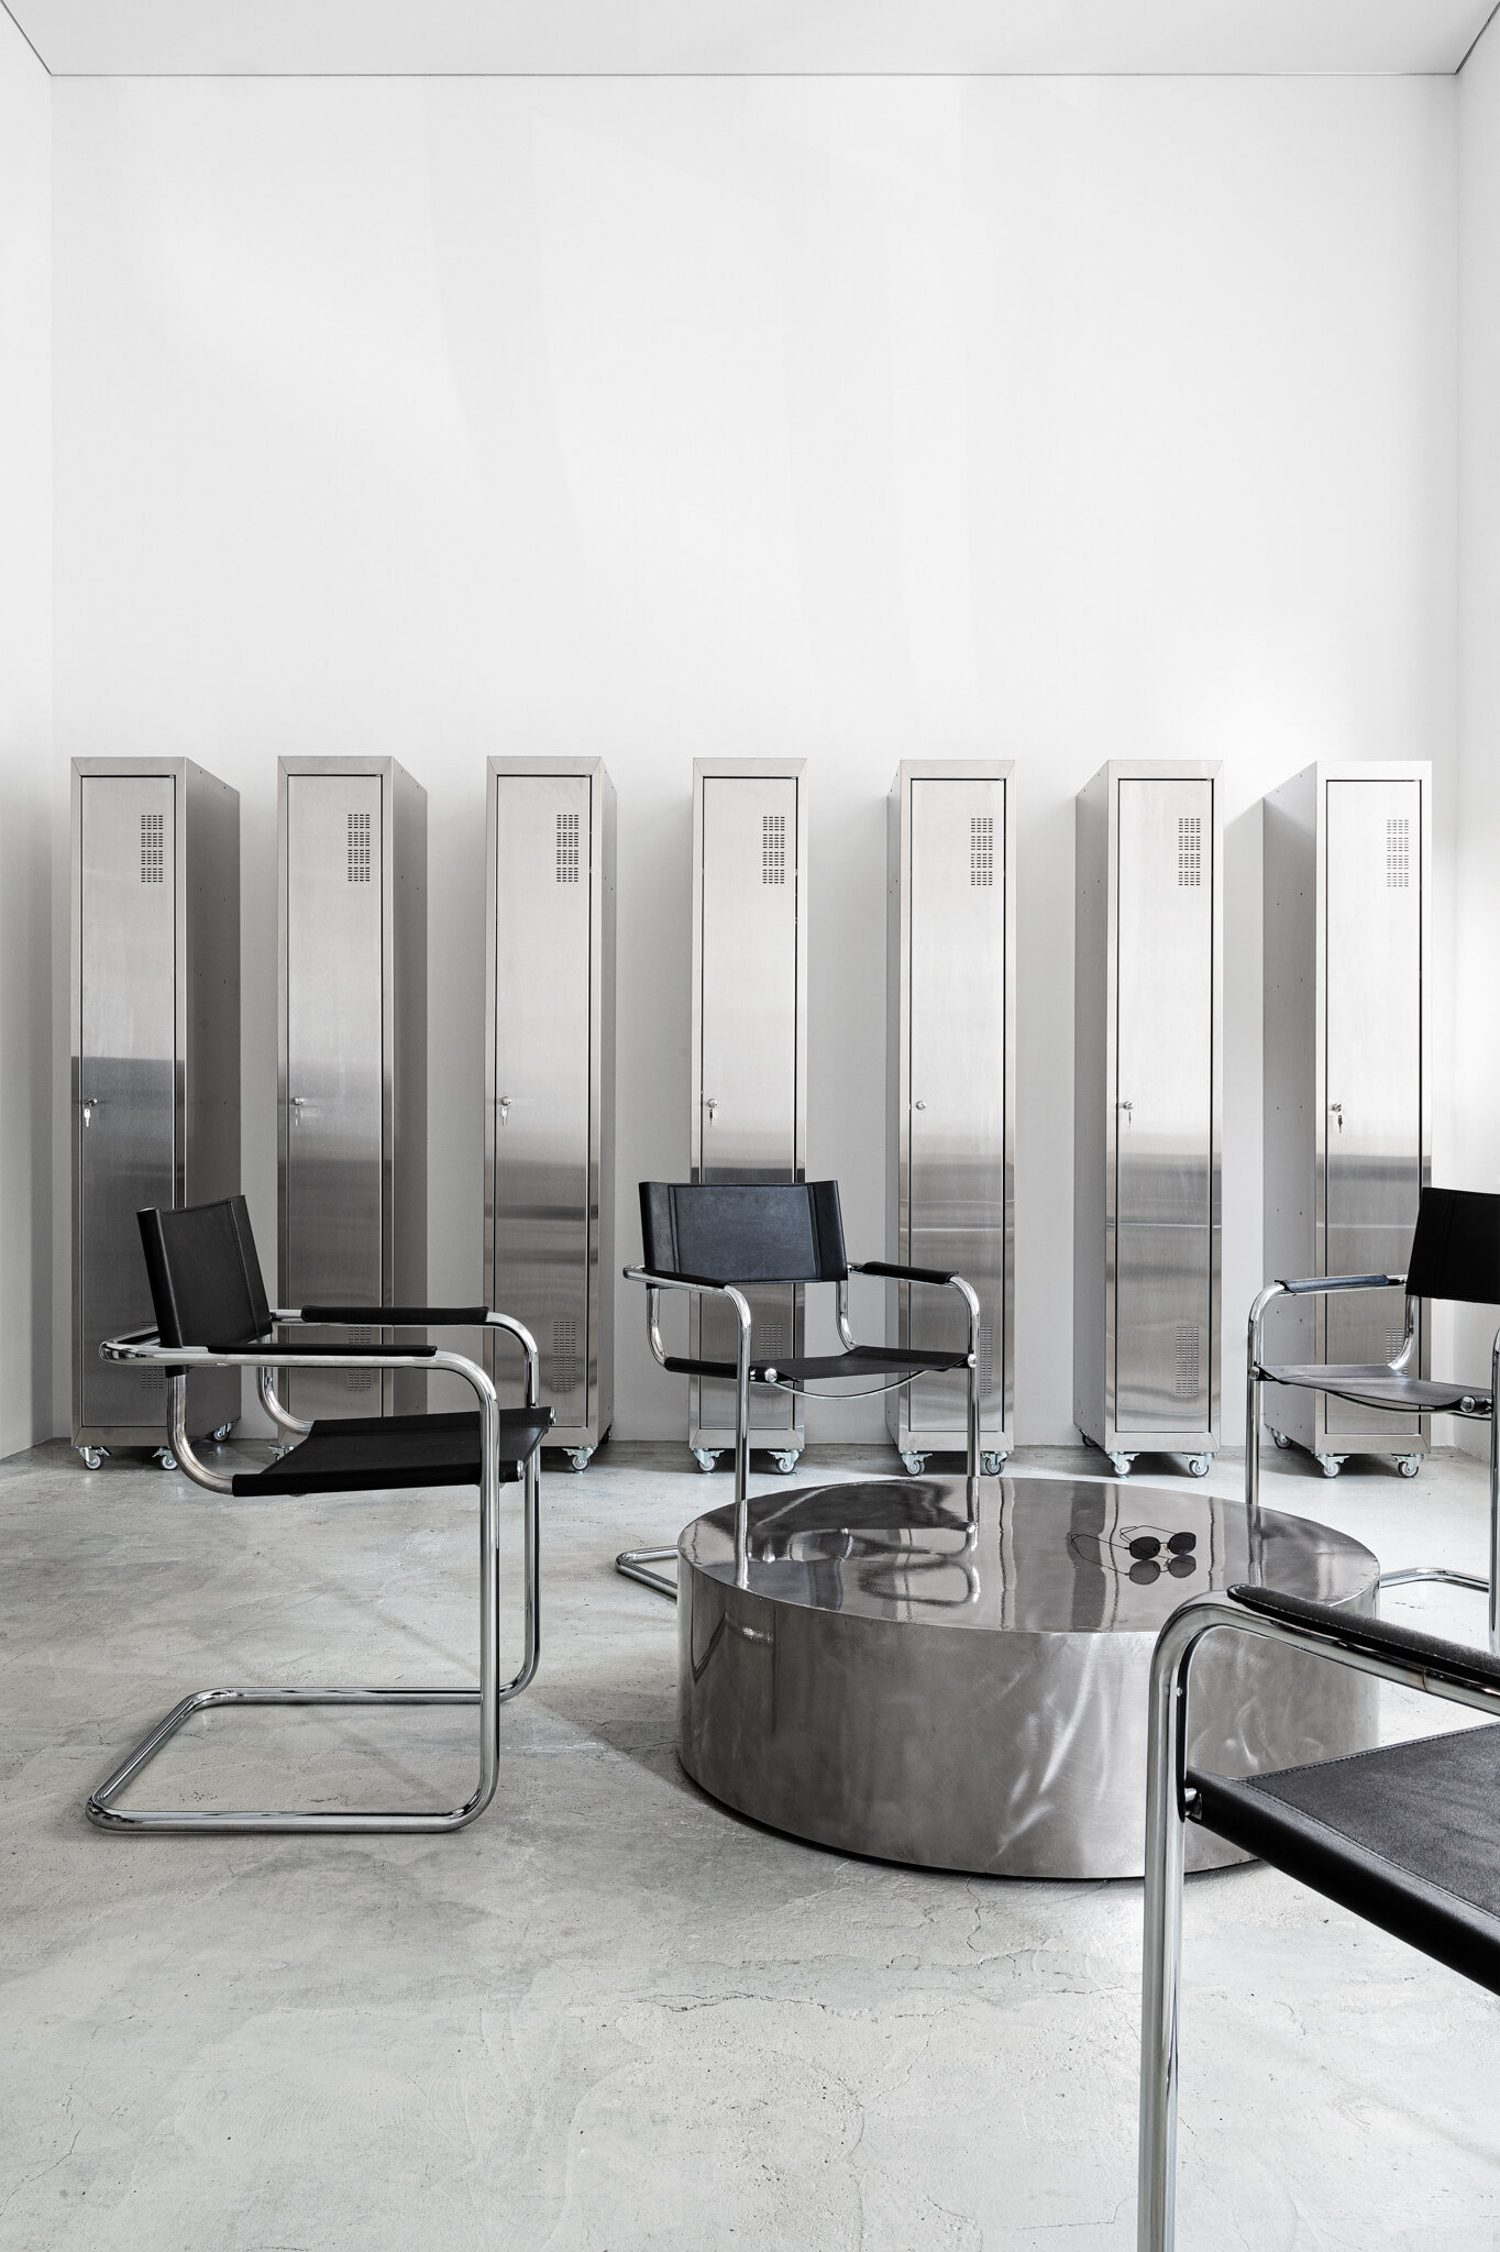 Industrial metal lockers meet vintage S34 leather and chromed steel armchairs designed by Mart Stam in 1927—the first cantilevered chair in furniture history. Photography: Yevhenii Avramenko and Nata Kurylenko